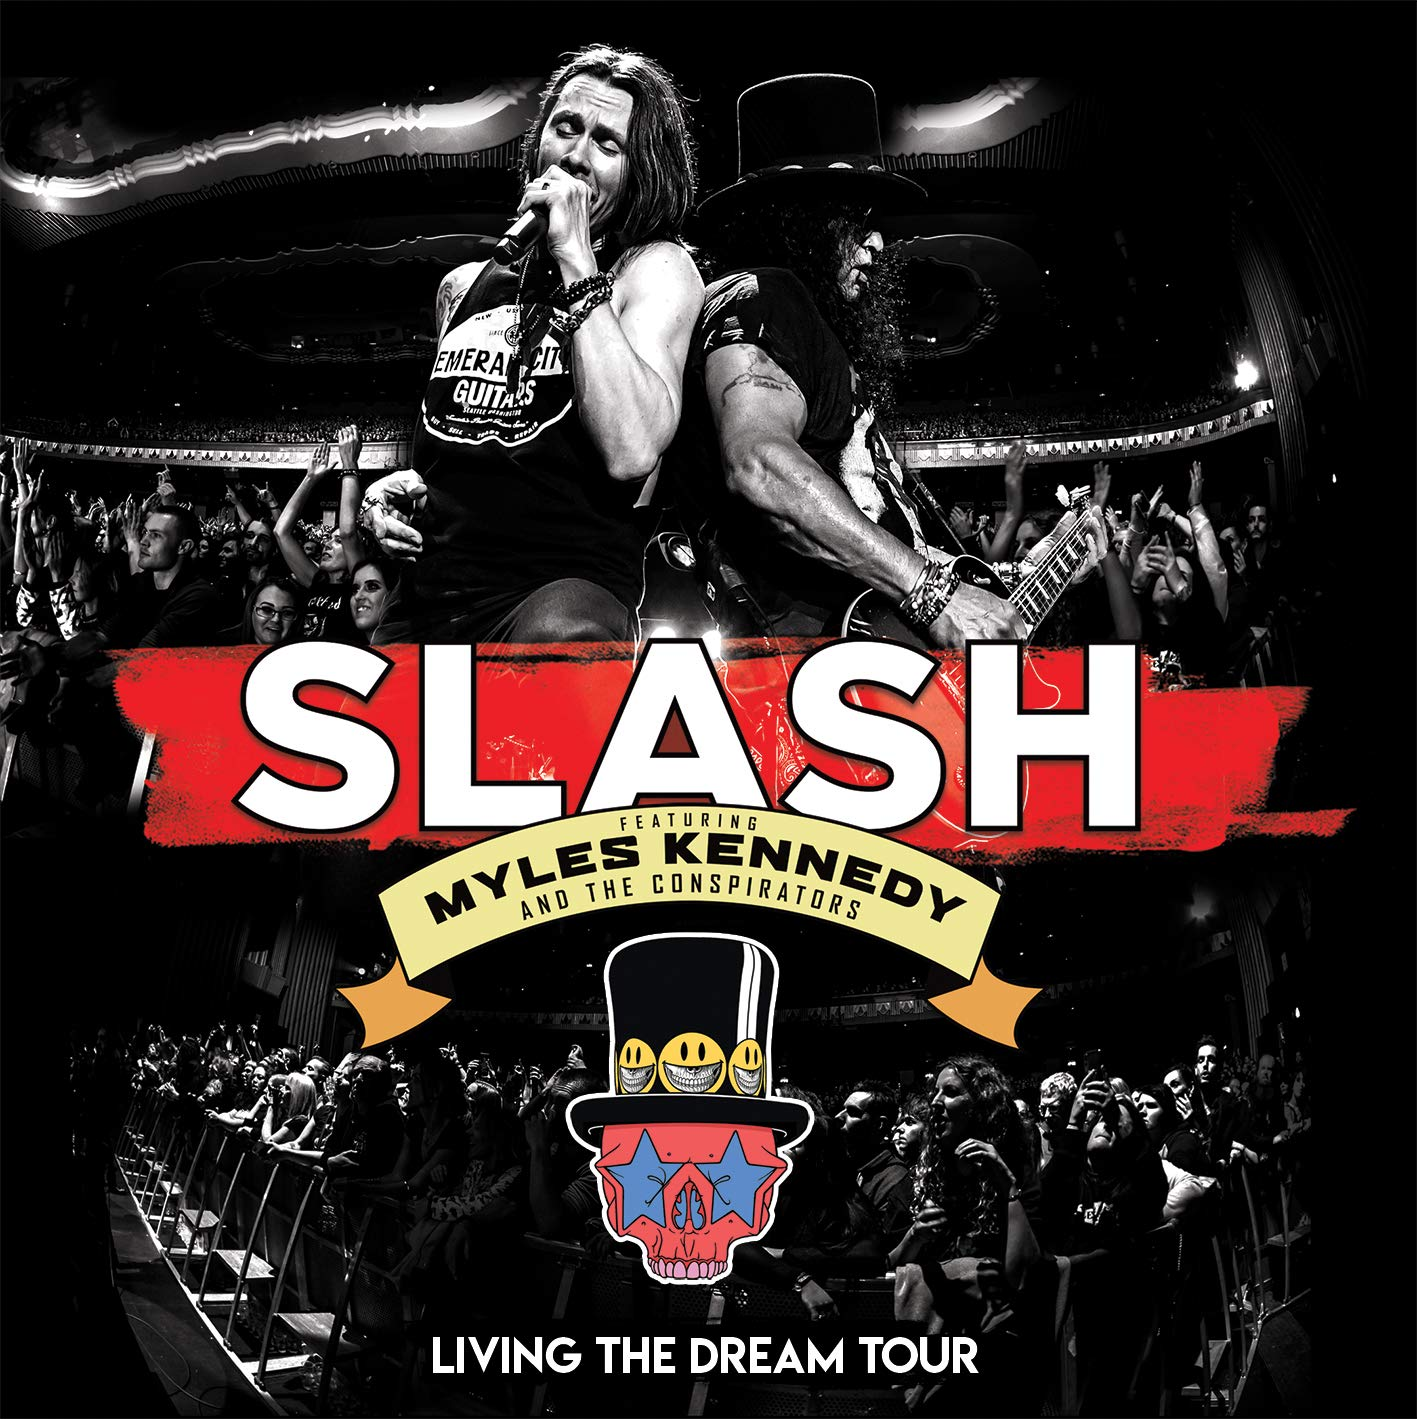 Slash france living the dream tour dvd blu ray show hammersmith dvd septembre 20 2019 smkc kennedy kerns fitz sidoris fev